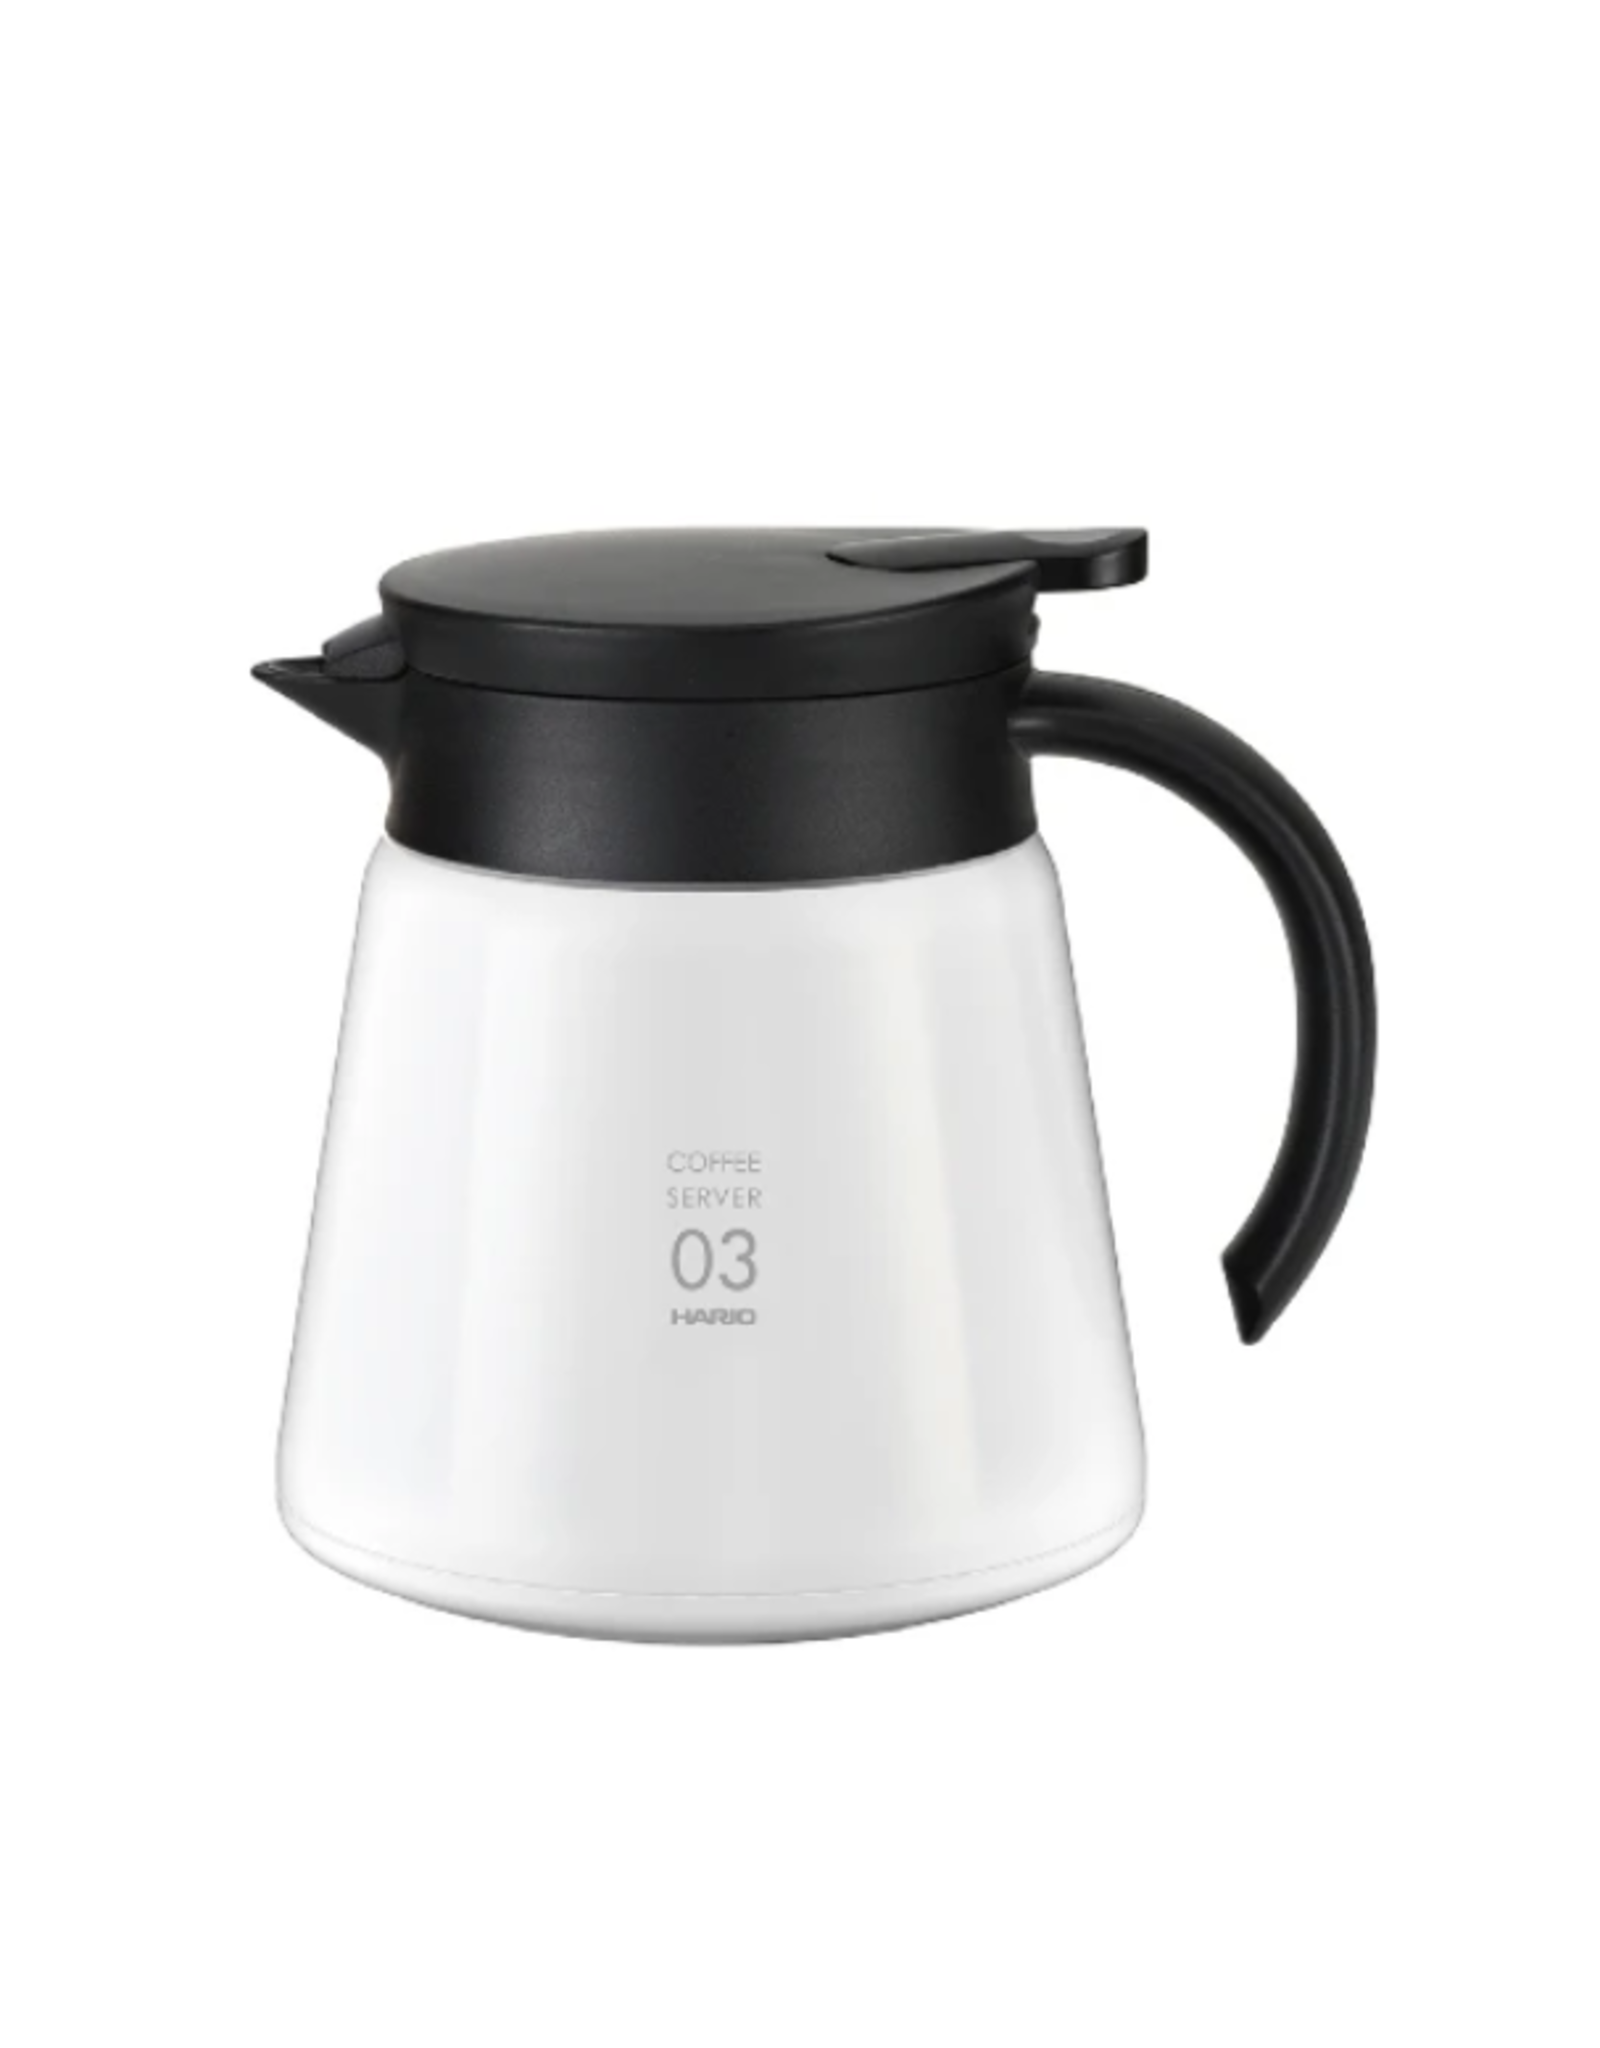 Hario Hario V60-03 Insulated Stainless Steel Server White